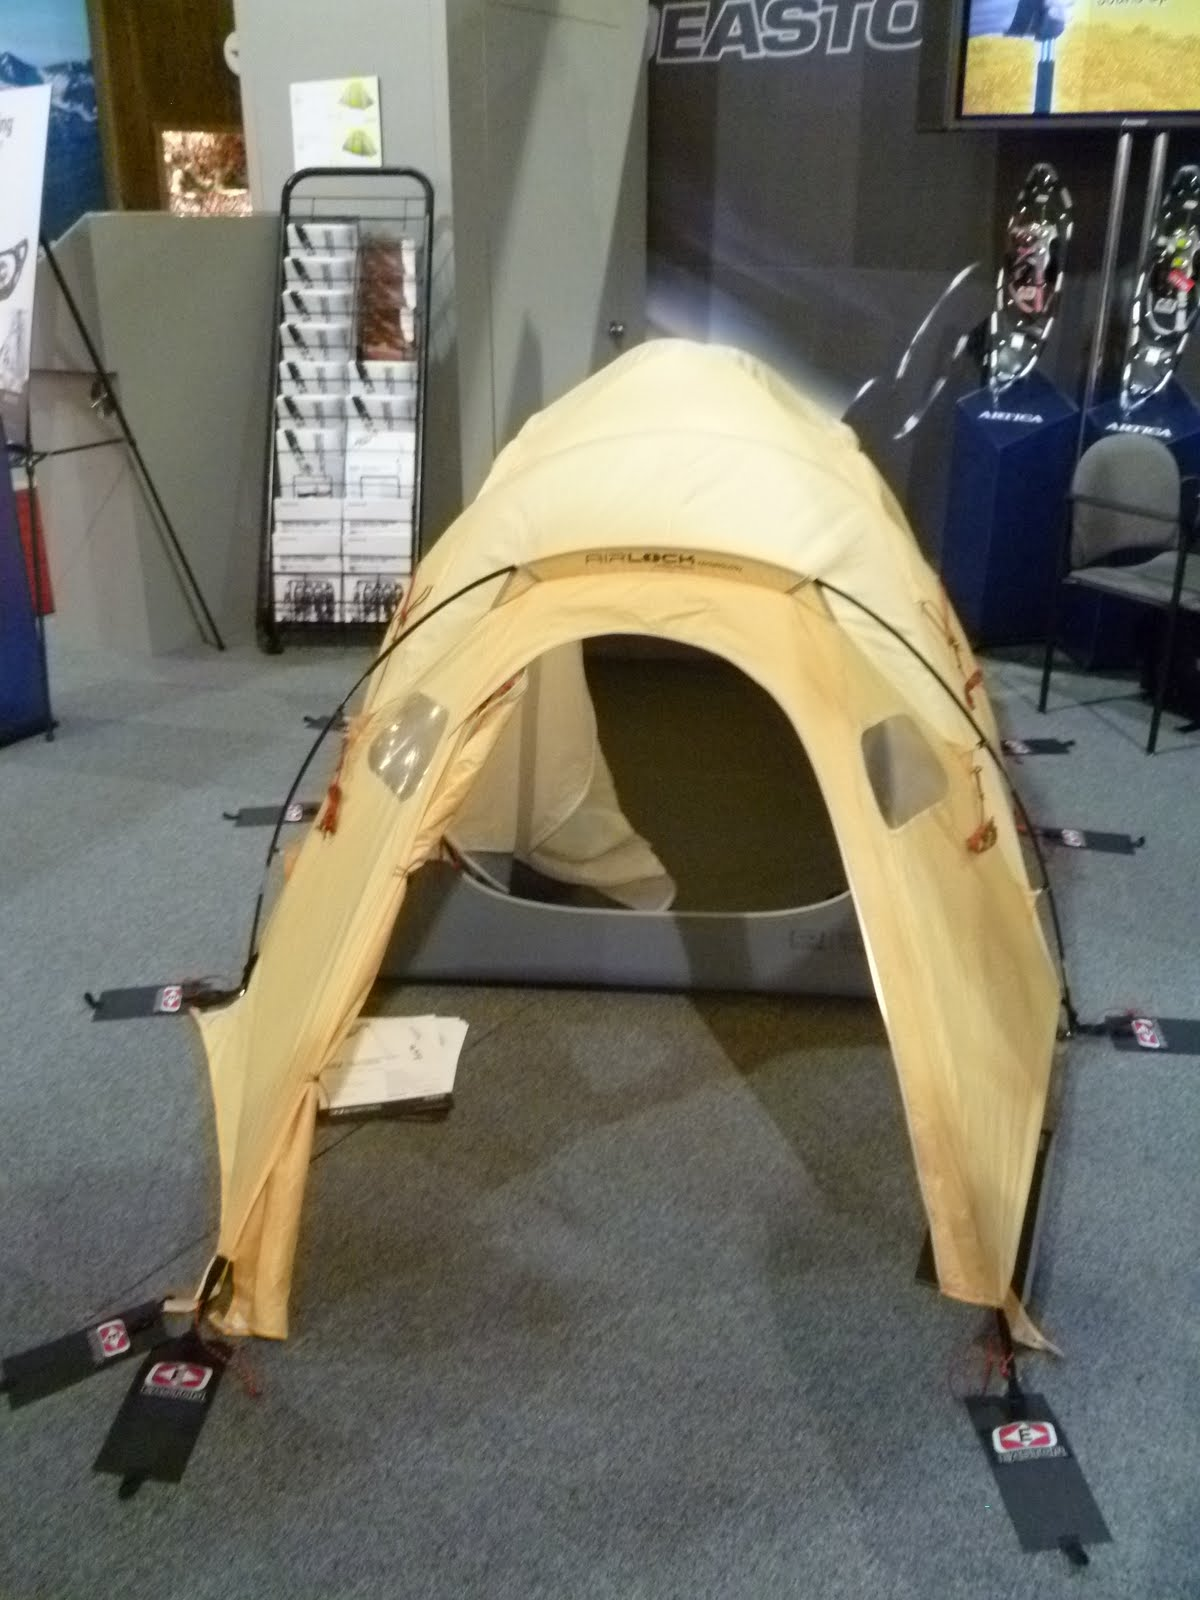 Easton Tent - I donu0027t recall the the name of the tent but Easton had tent poles that were half the weight of aluminum tent poles. & SmallFrye-Travels: Outdoor Retailer Show 1/23/11